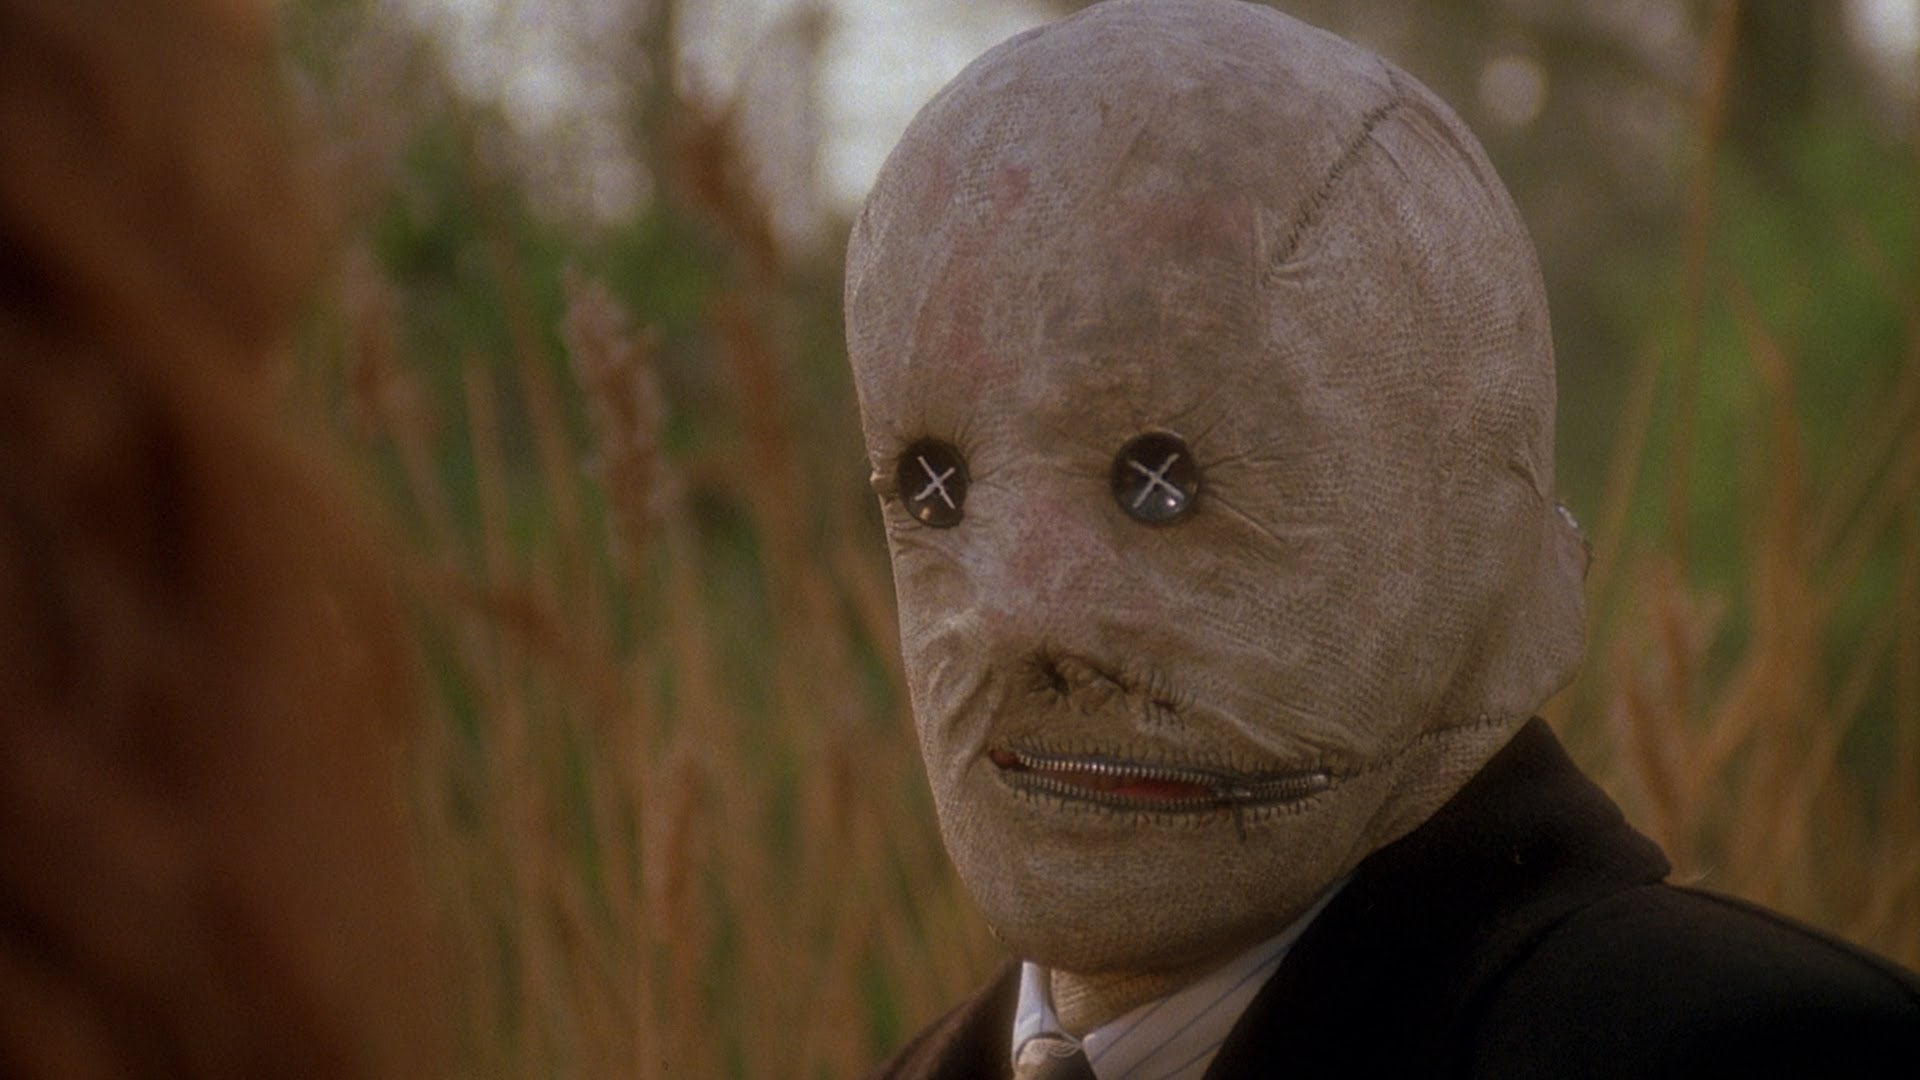 Syfy Is Bringing Clive Barker's Horror To Television With Nightbreed